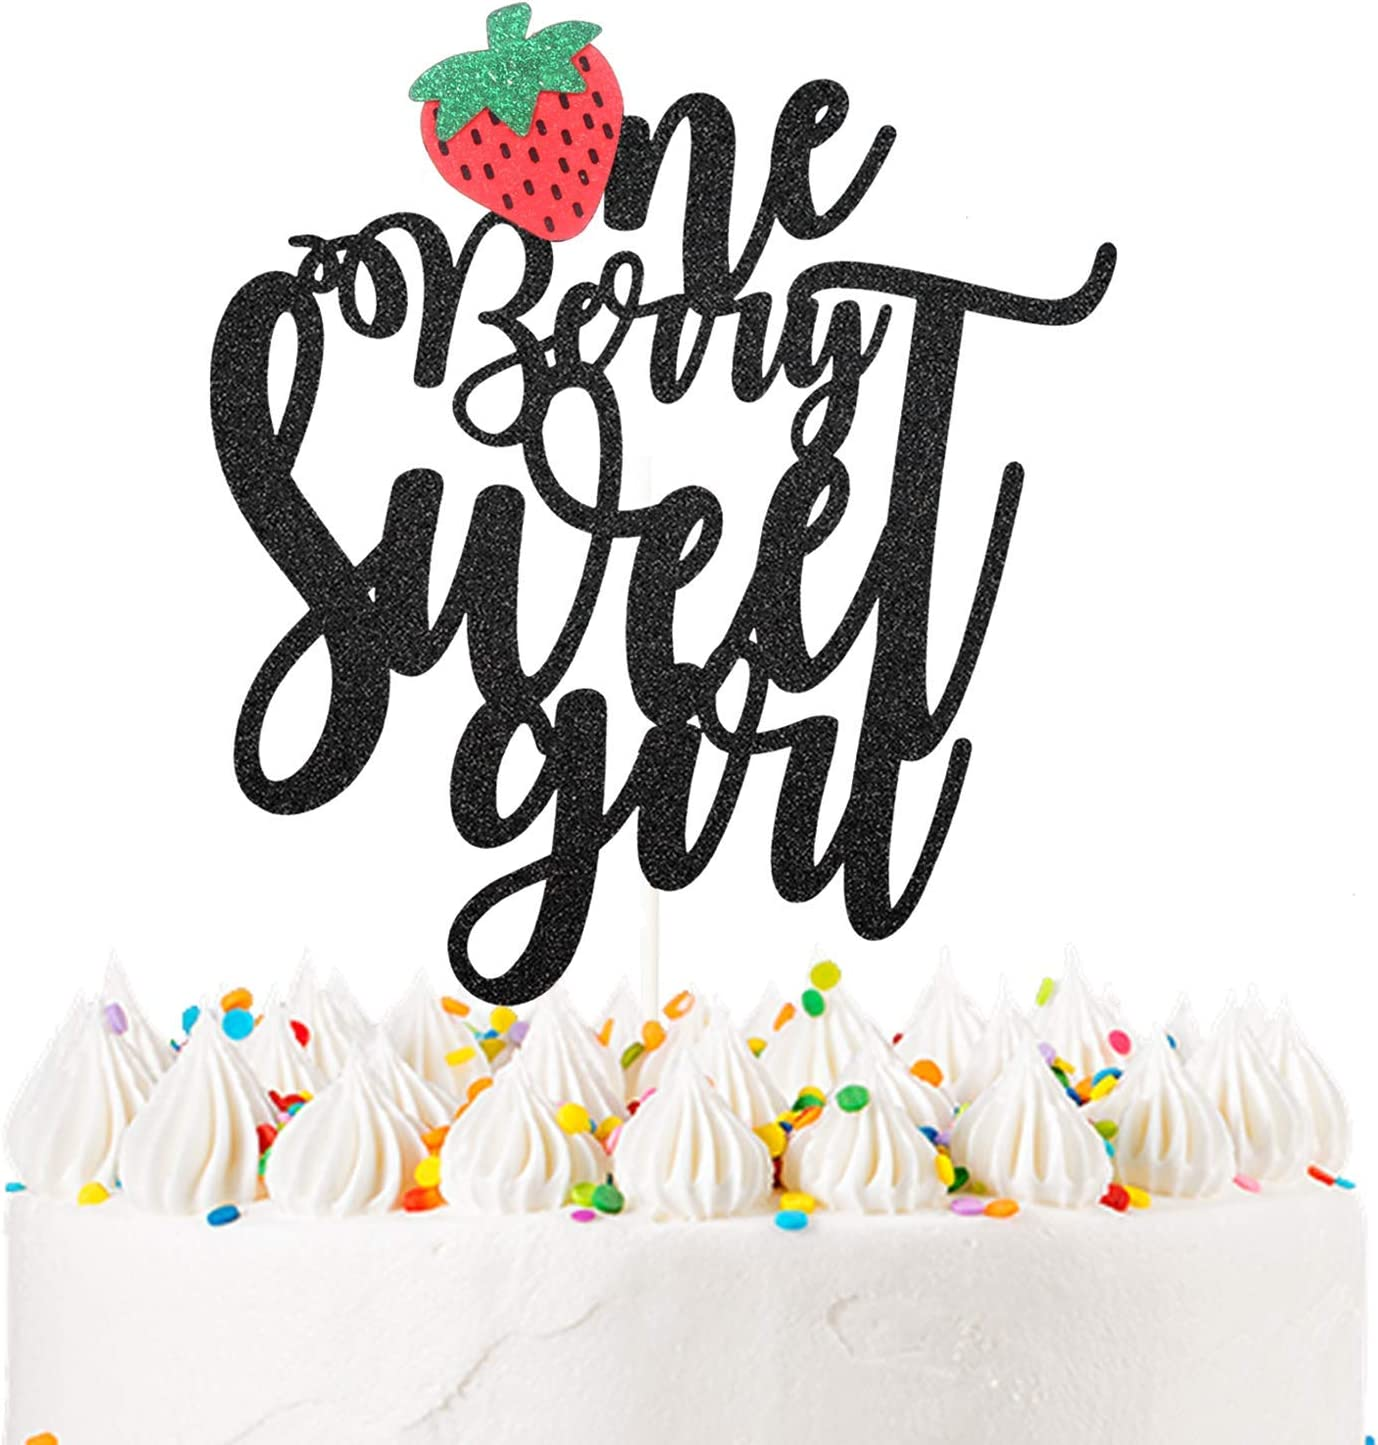 sweet one party strawberry party sweet one cake Strawberry cake strawberry birthday berry sweet cake sweet one birthday